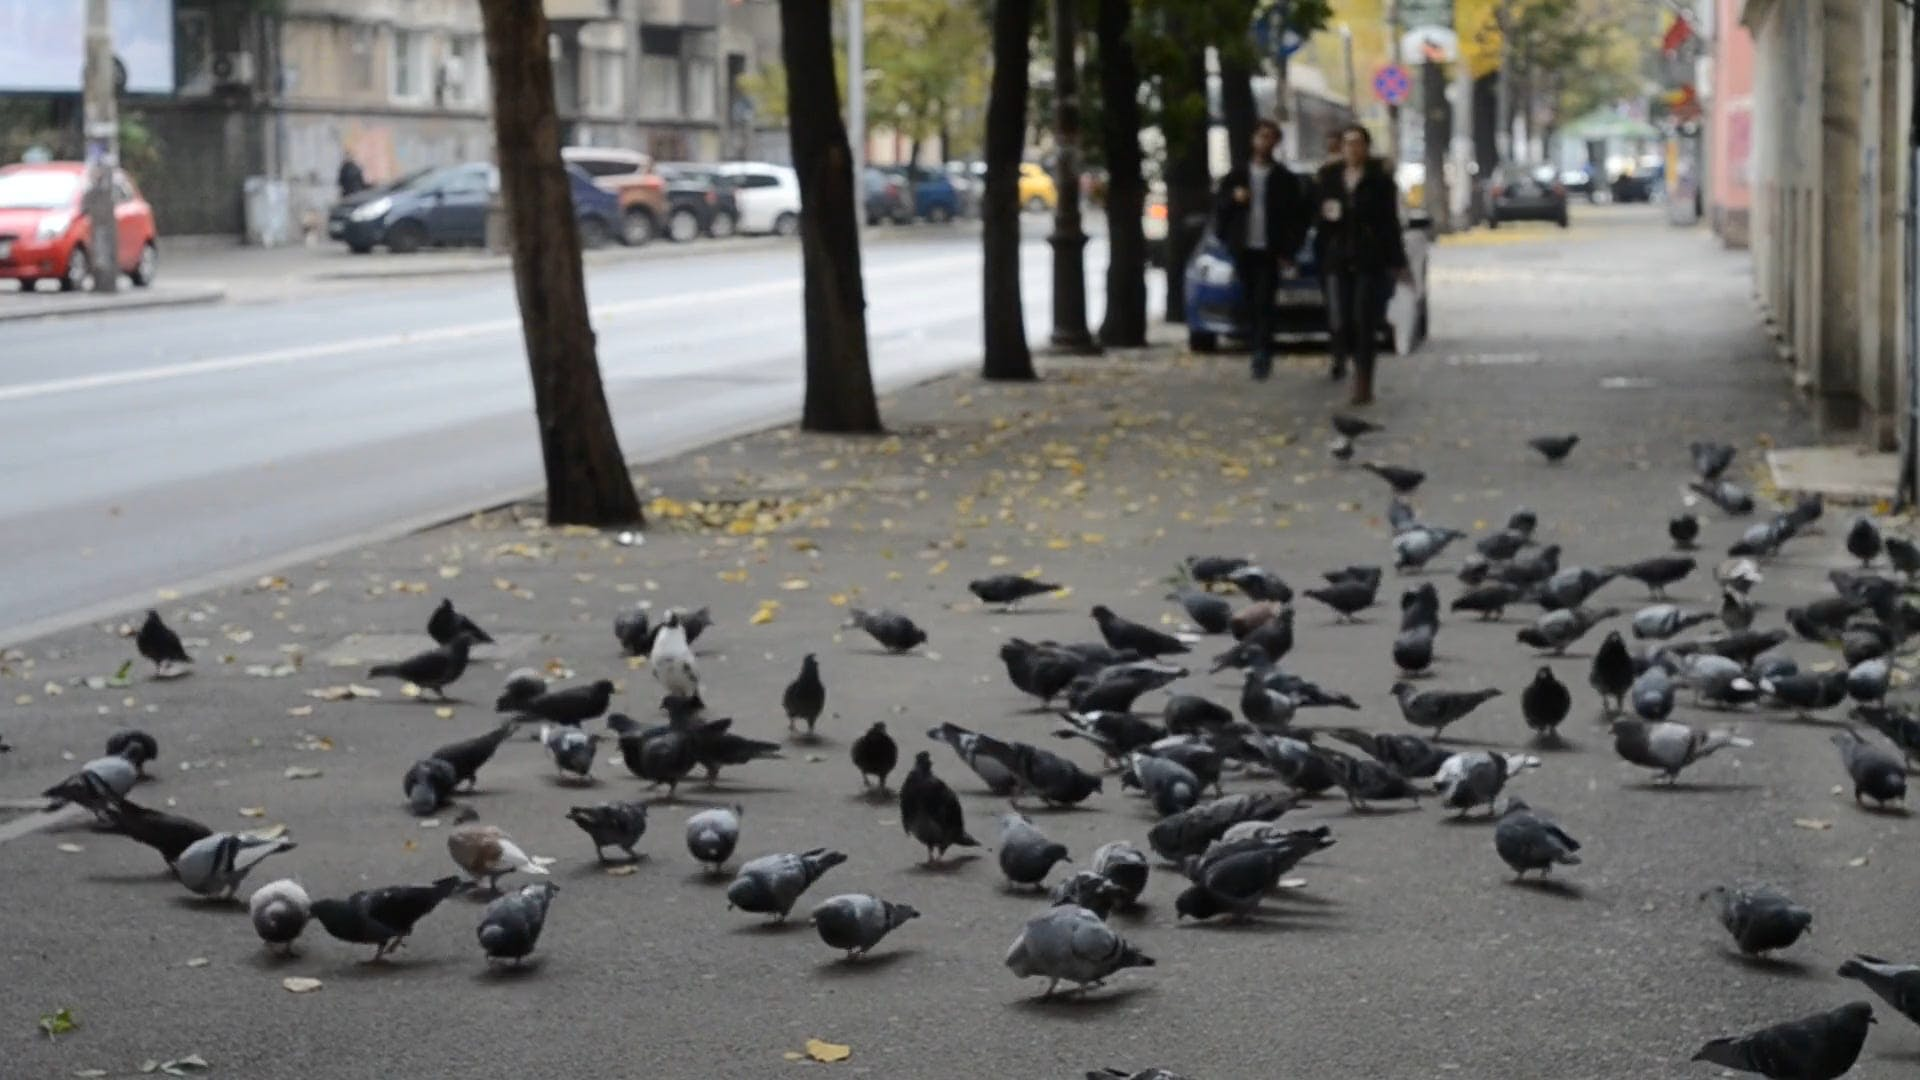 Pigeons On Ground